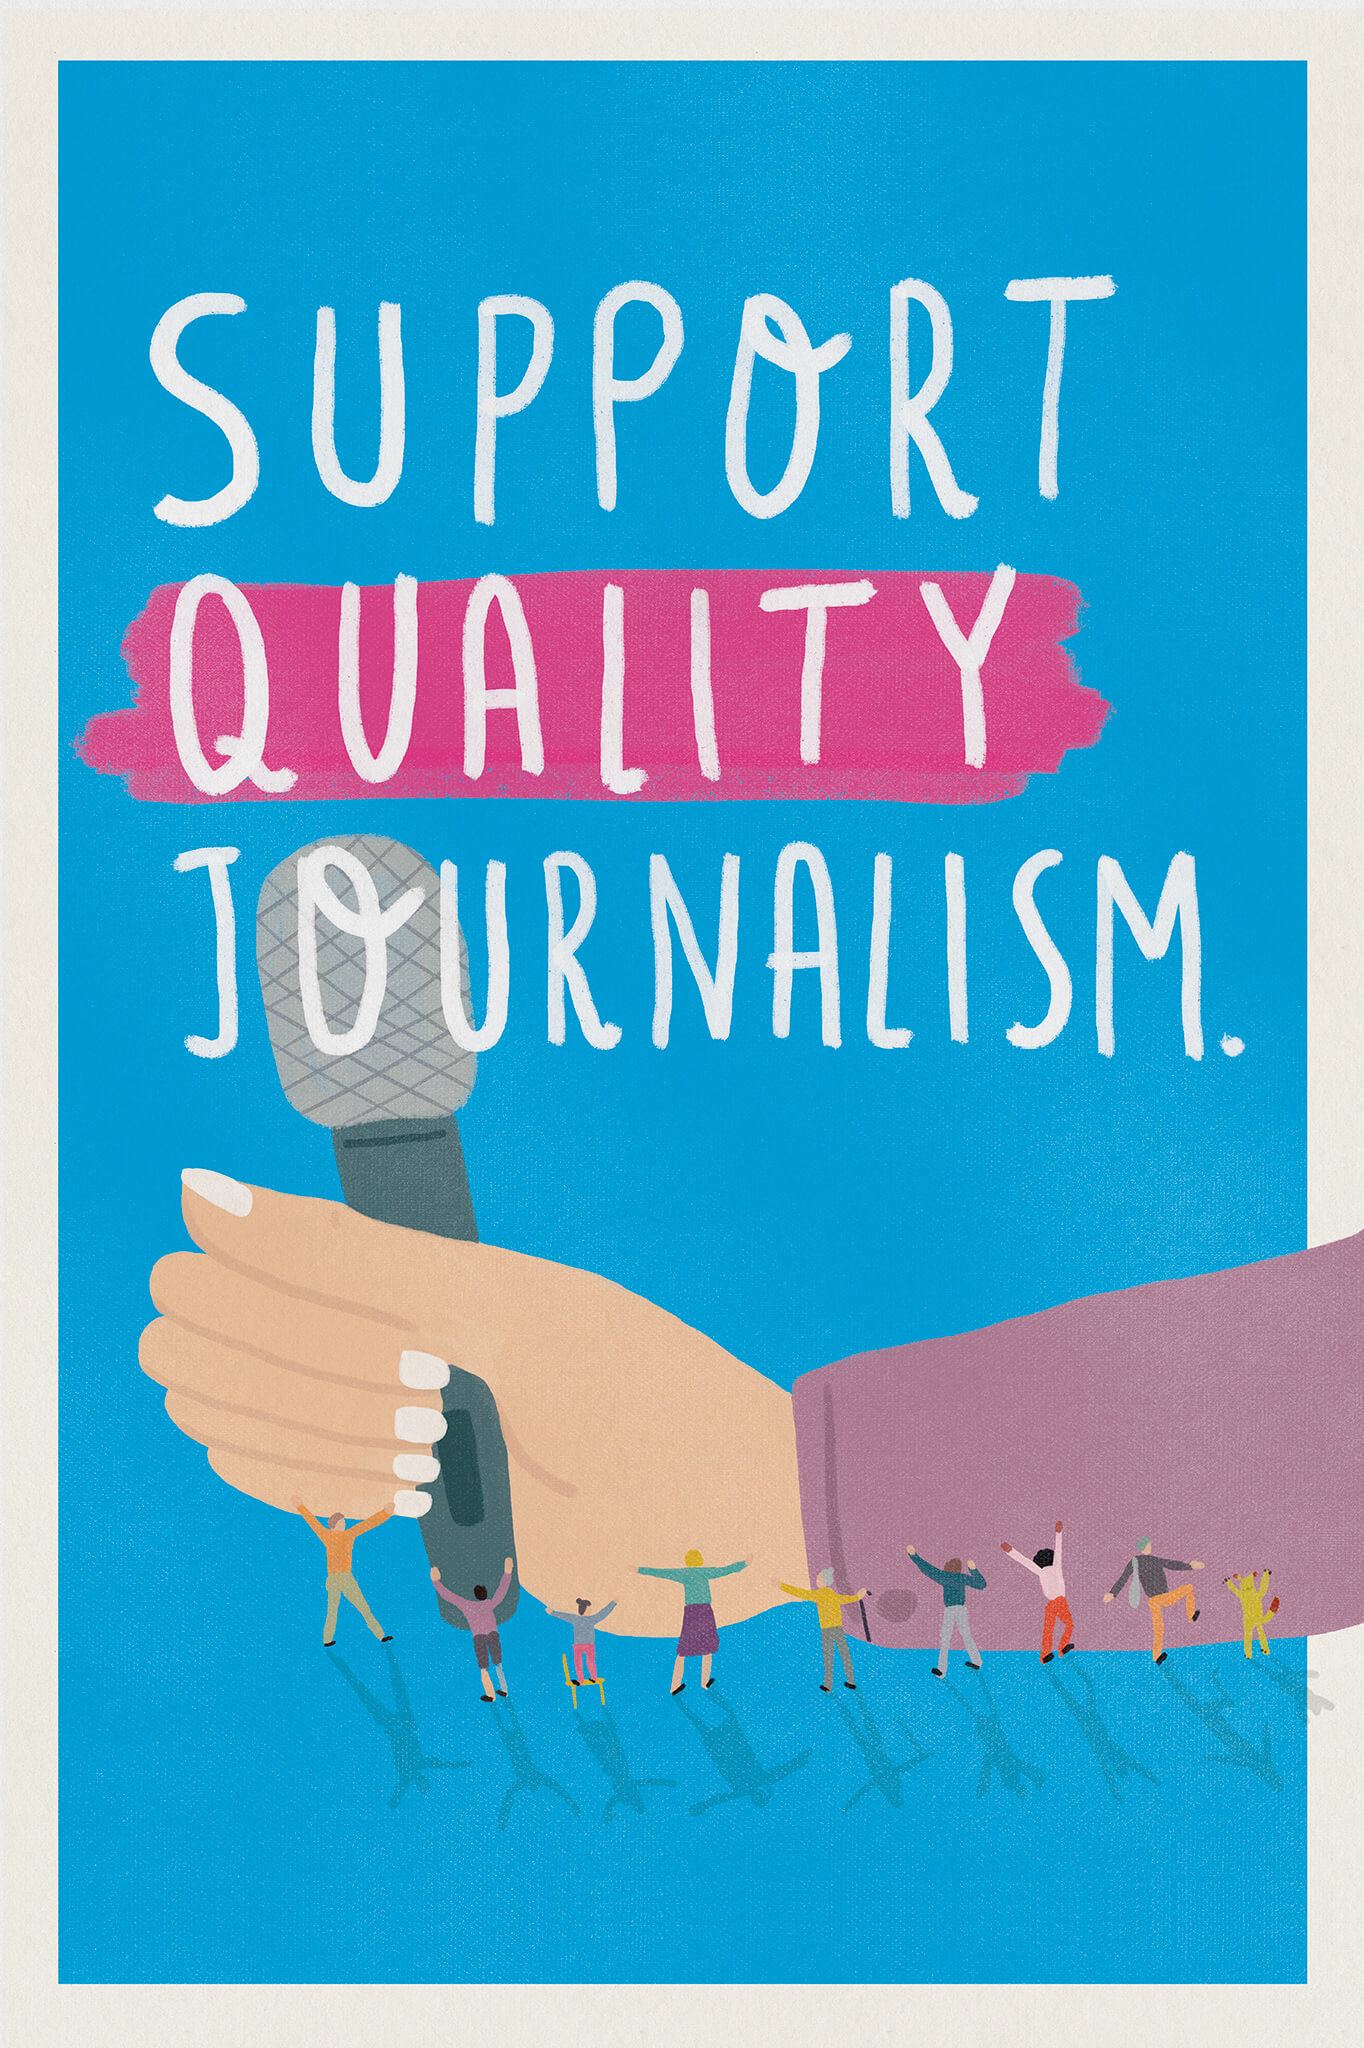 Support Quality Journalism (series, 2/3) main image